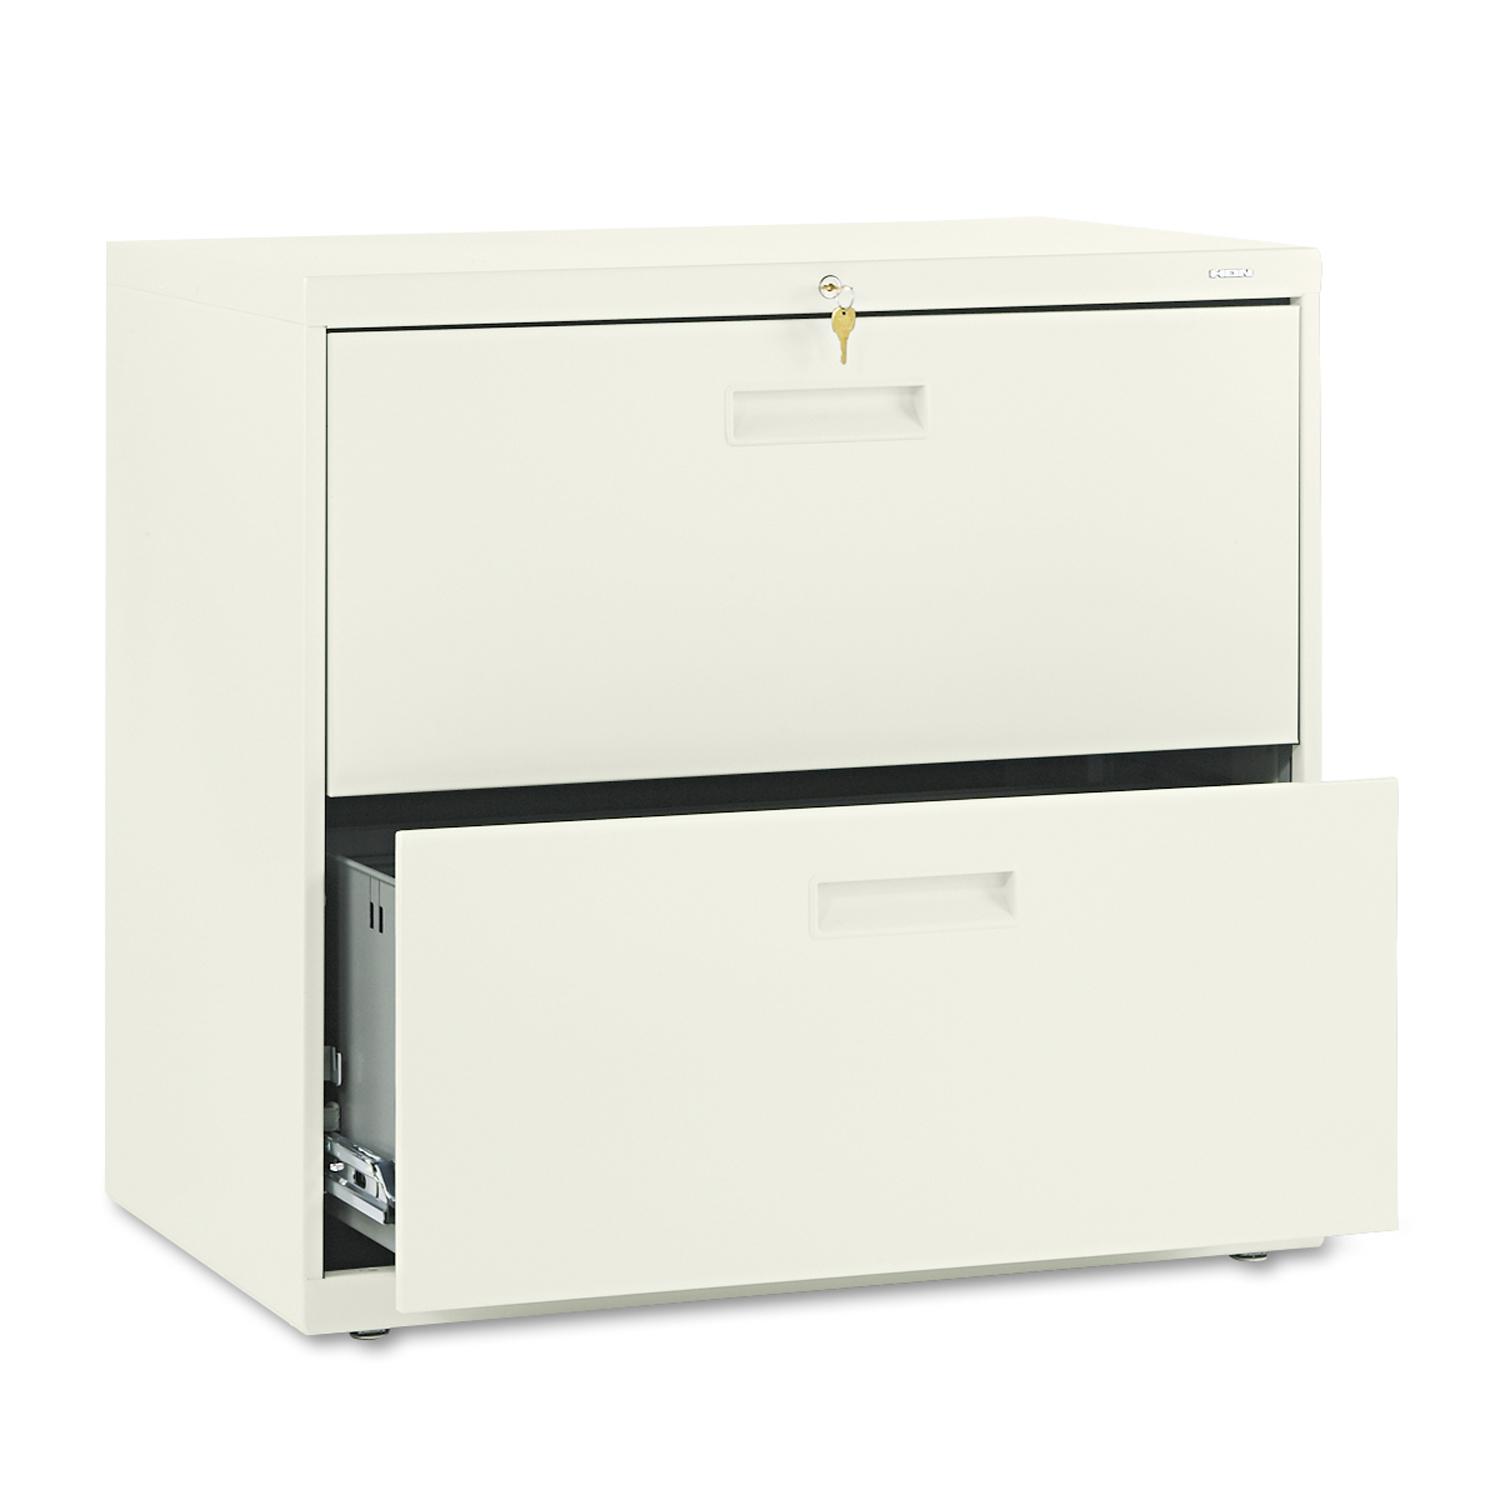 HON 500 Series Two-Drawer Lateral File, 30w x28-3/8h x19-1/4d, Putty PartNumber: 05029457000P KsnValue: 7052553 MfgPartNumber: HON572LL